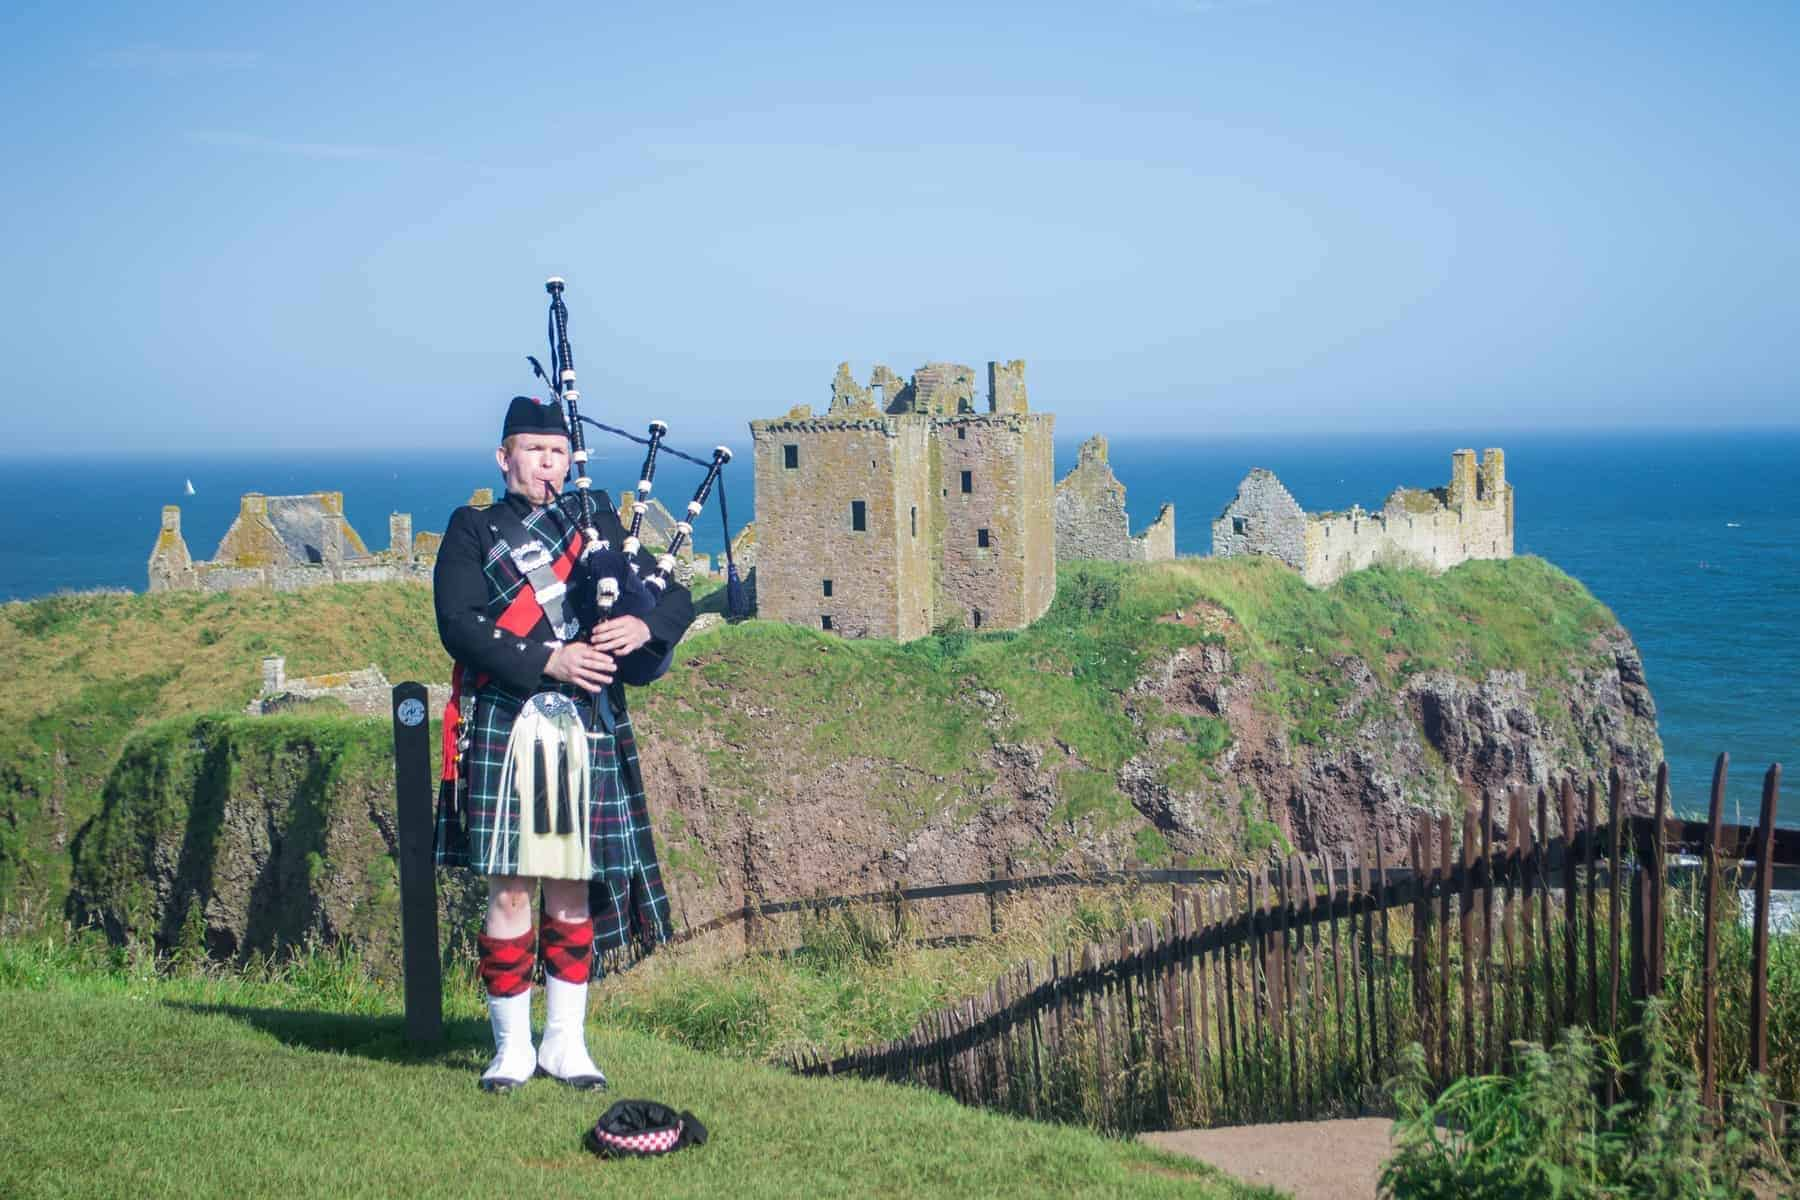 Scottish Piper at Dunnottar Castle, Aberdeenshire, Scotland. He plays pipe with the castle in background